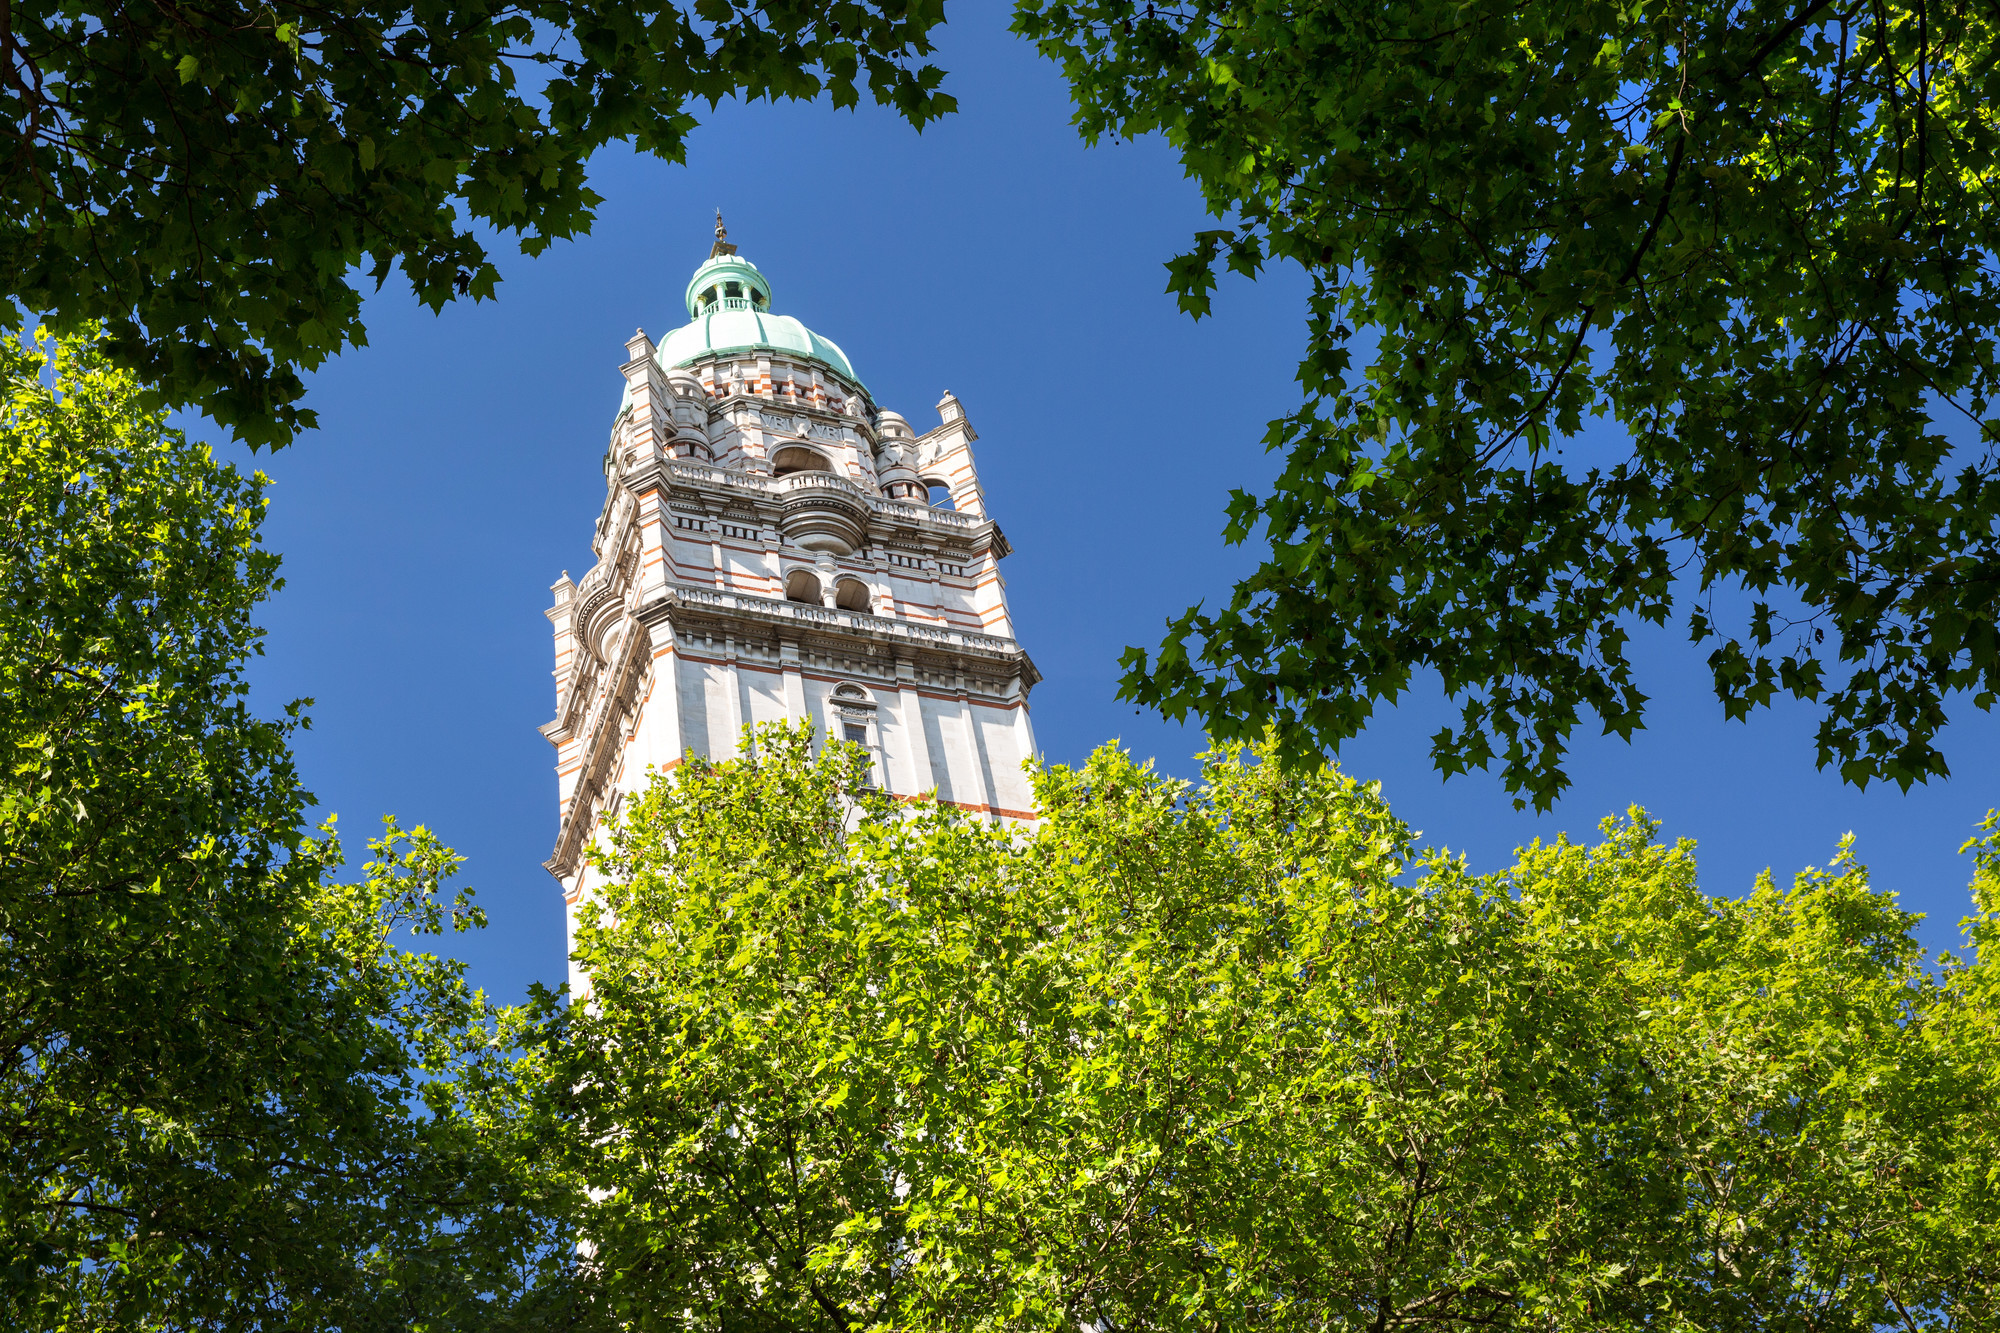 Queen's Tower, Imperial College London